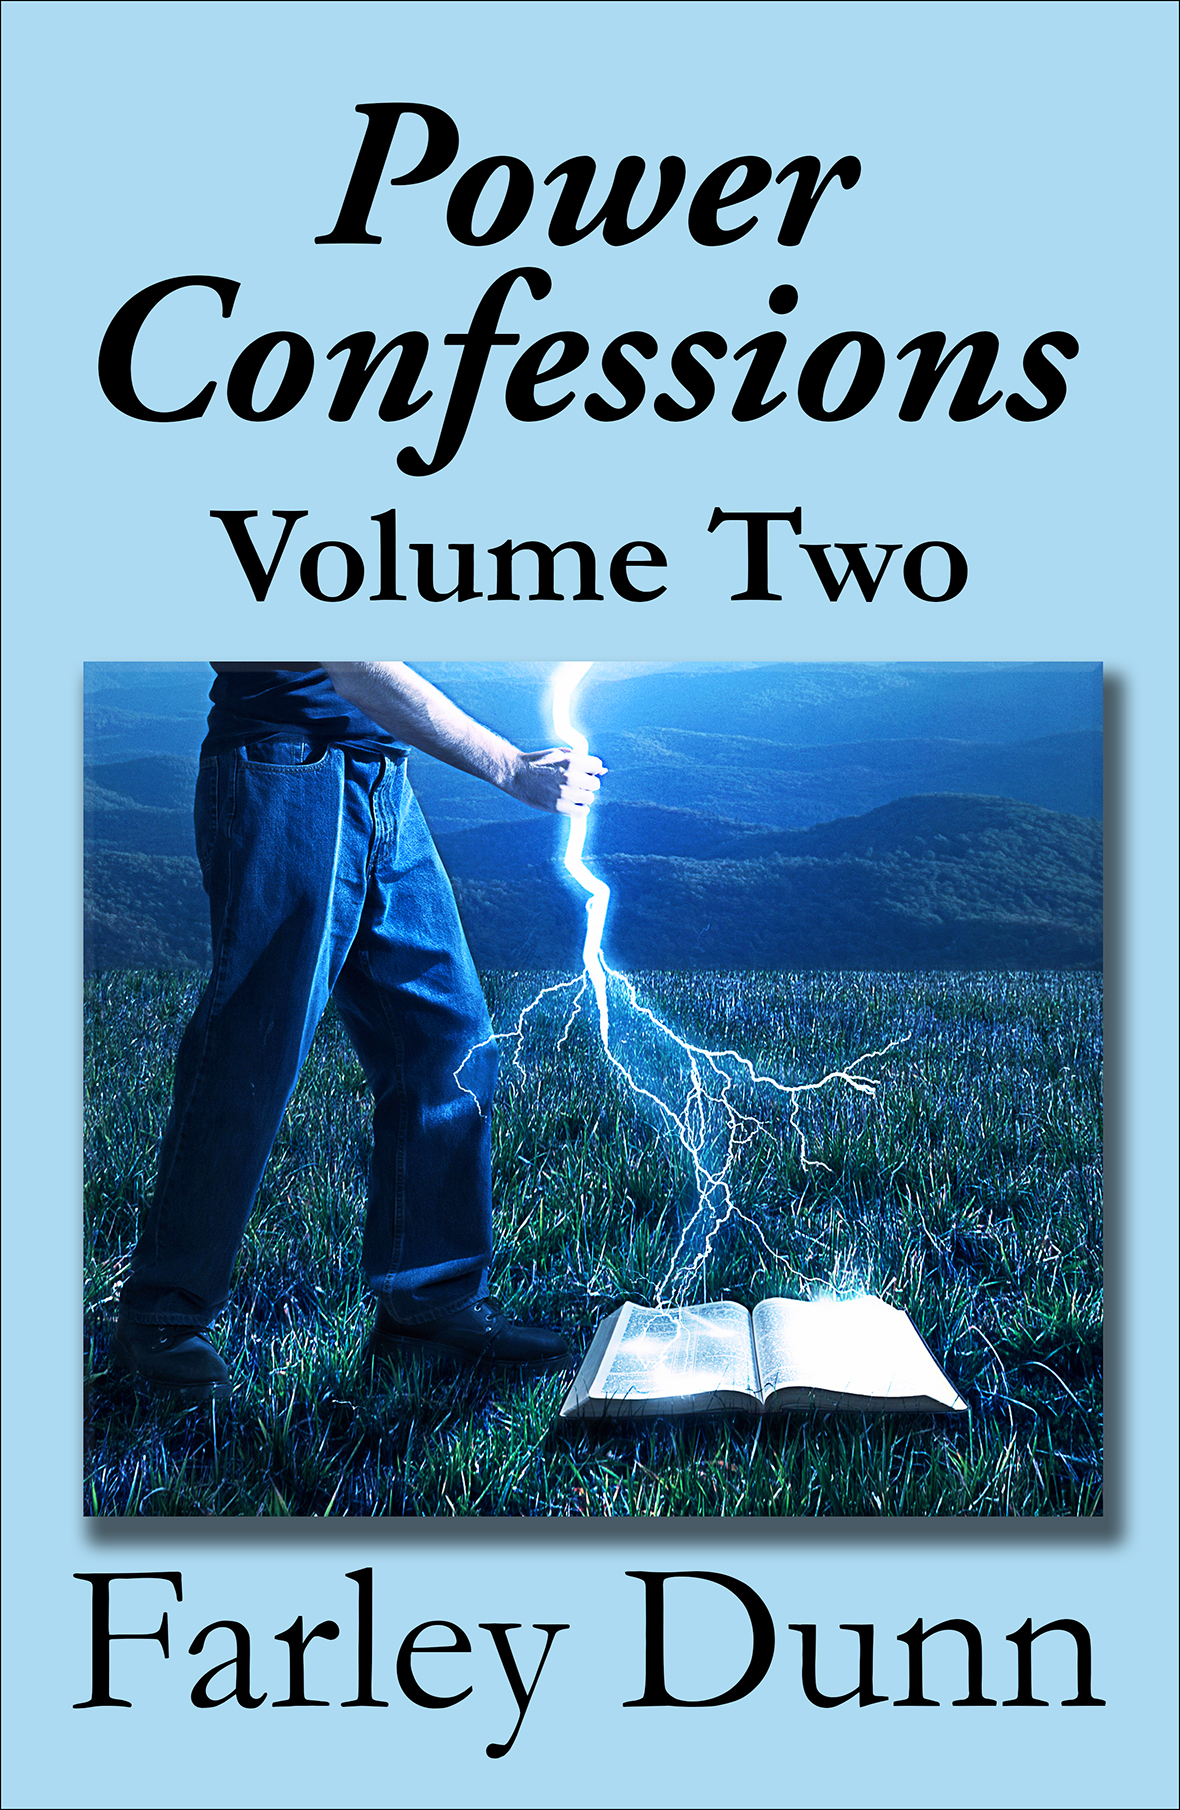 Power Confessions Volume Two Cover Front V2 for Web Insertion